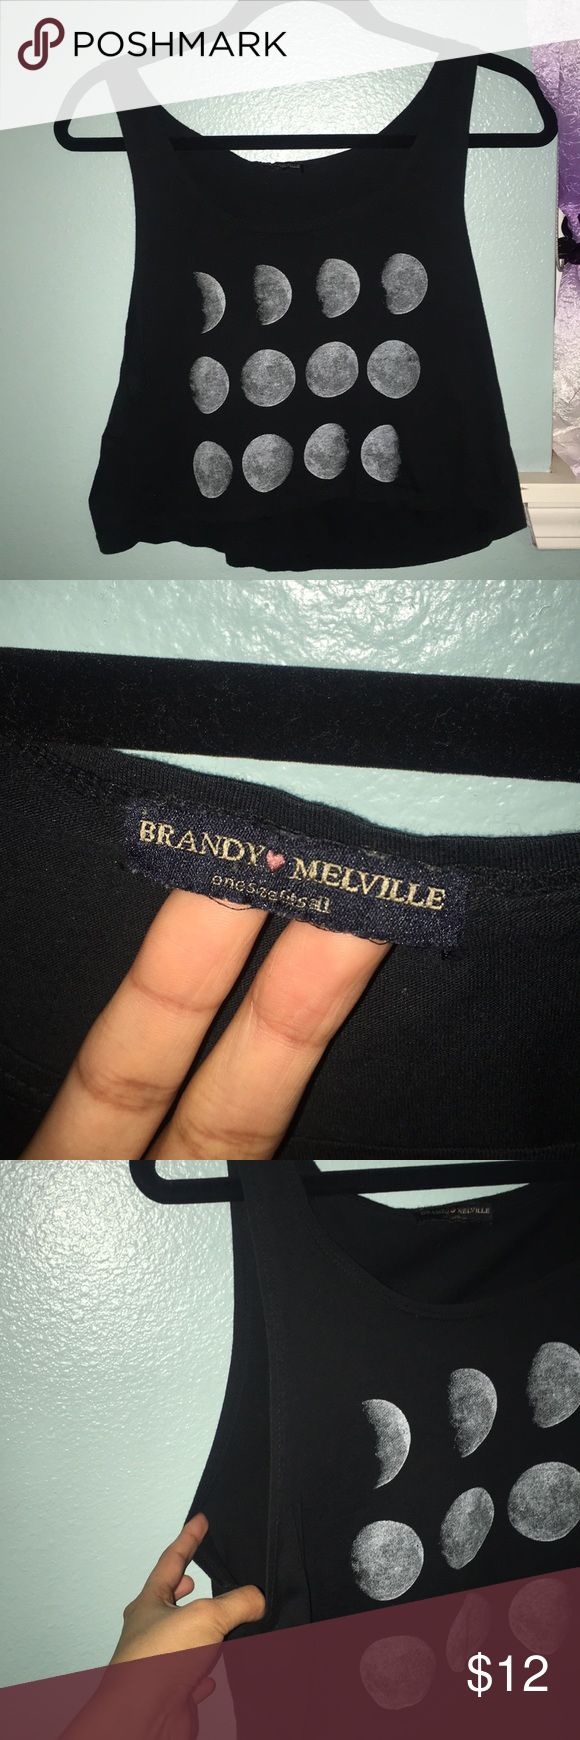 Brandy Melville Tank Top From Brandy Melville shirt. Only located in few states. (Check them out on their website). The shirt is low cut on the underarms and it is a semi-crop top. Brandy Melville clothing materials are super soft and comfortable (: Brandy Melville Tops Tank Tops